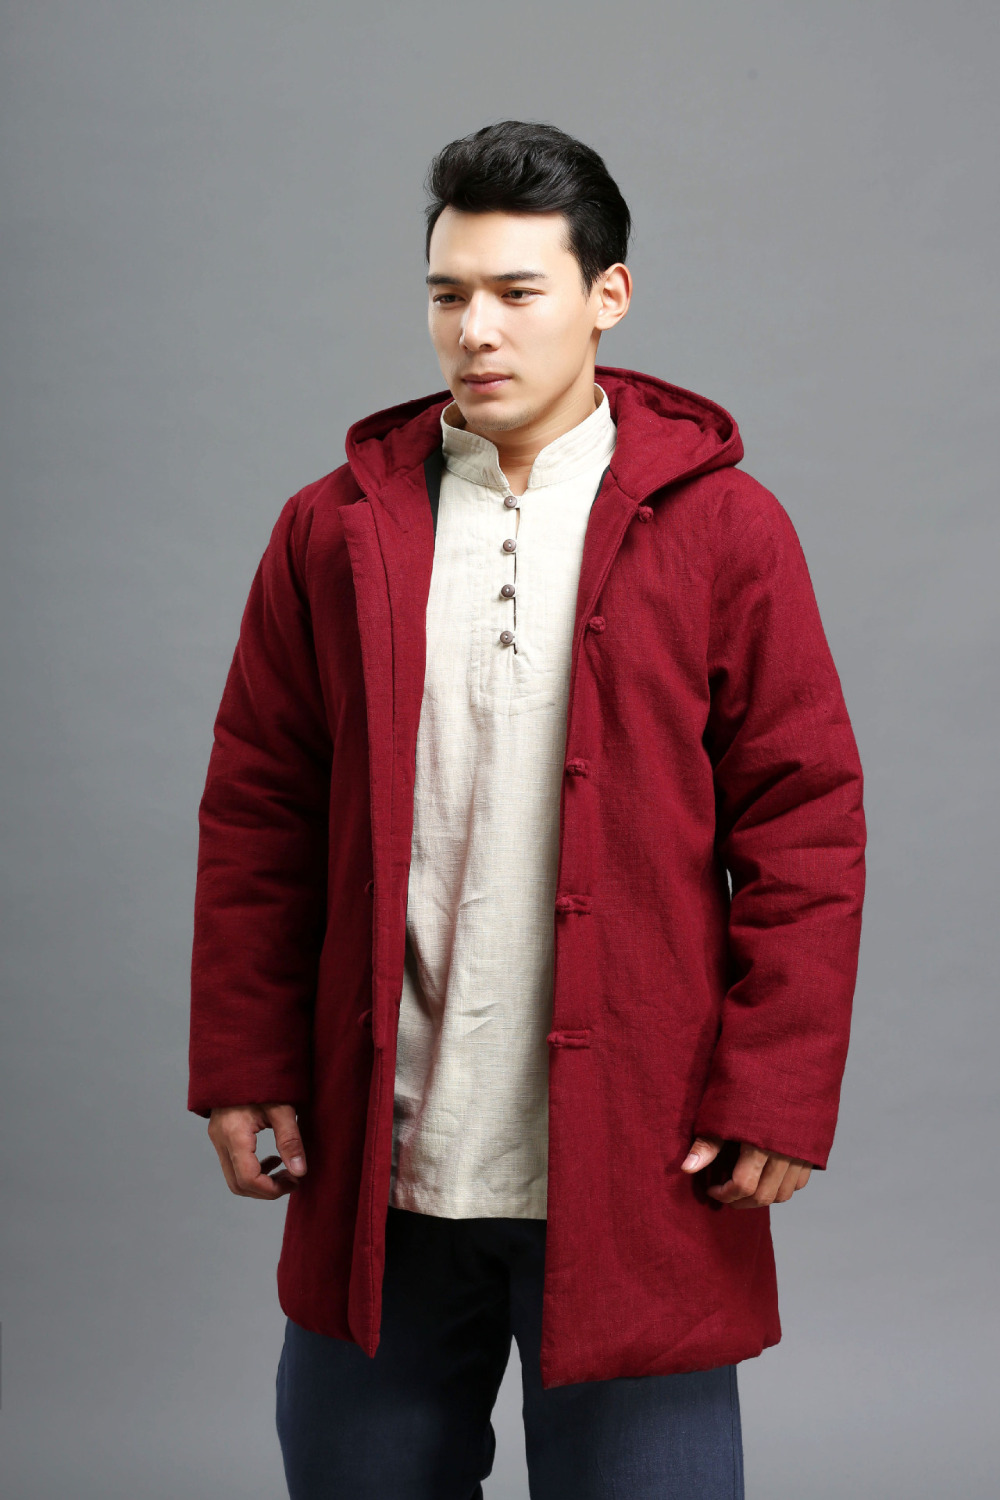 2015 Autumn winter 3 colors cotton linen men's coat vintage Cotton-padded clothes Outer Parkas two-sided Jacket 2015 autumn winter 3 colors cotton linen men s coat vintage cotton padded clothes outer parkas two sided jacket